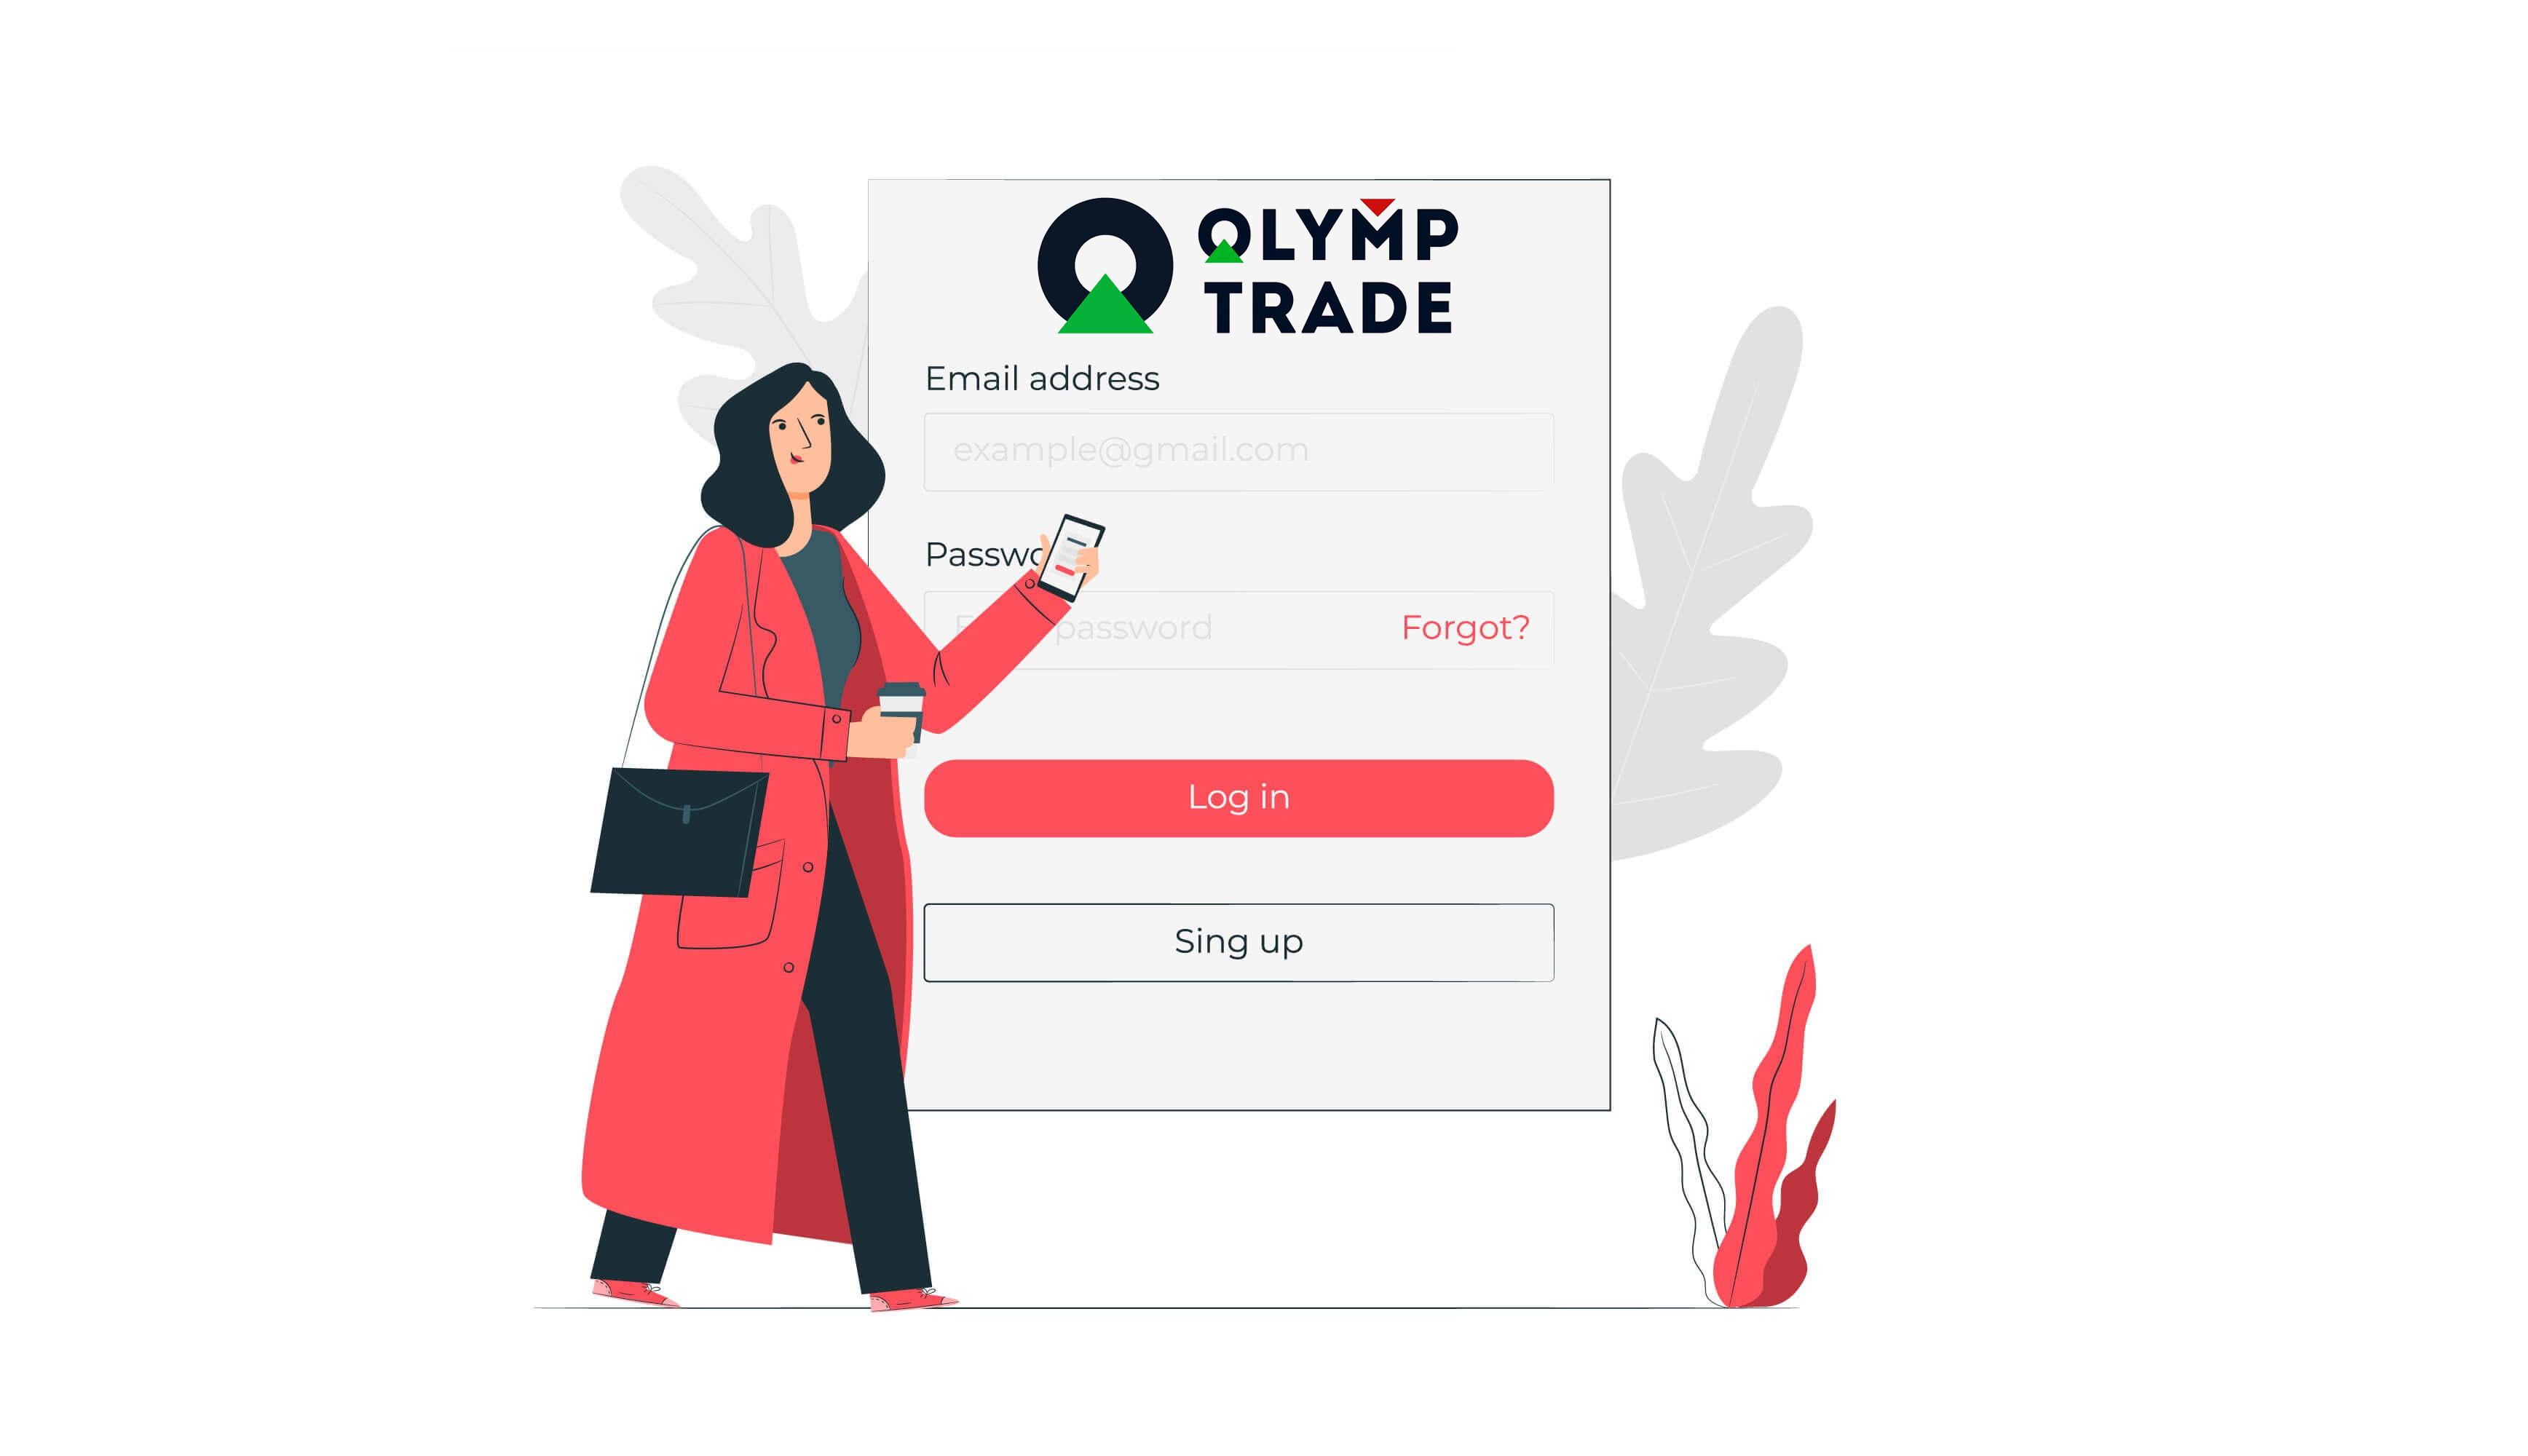 How to Login to Olymp Trade